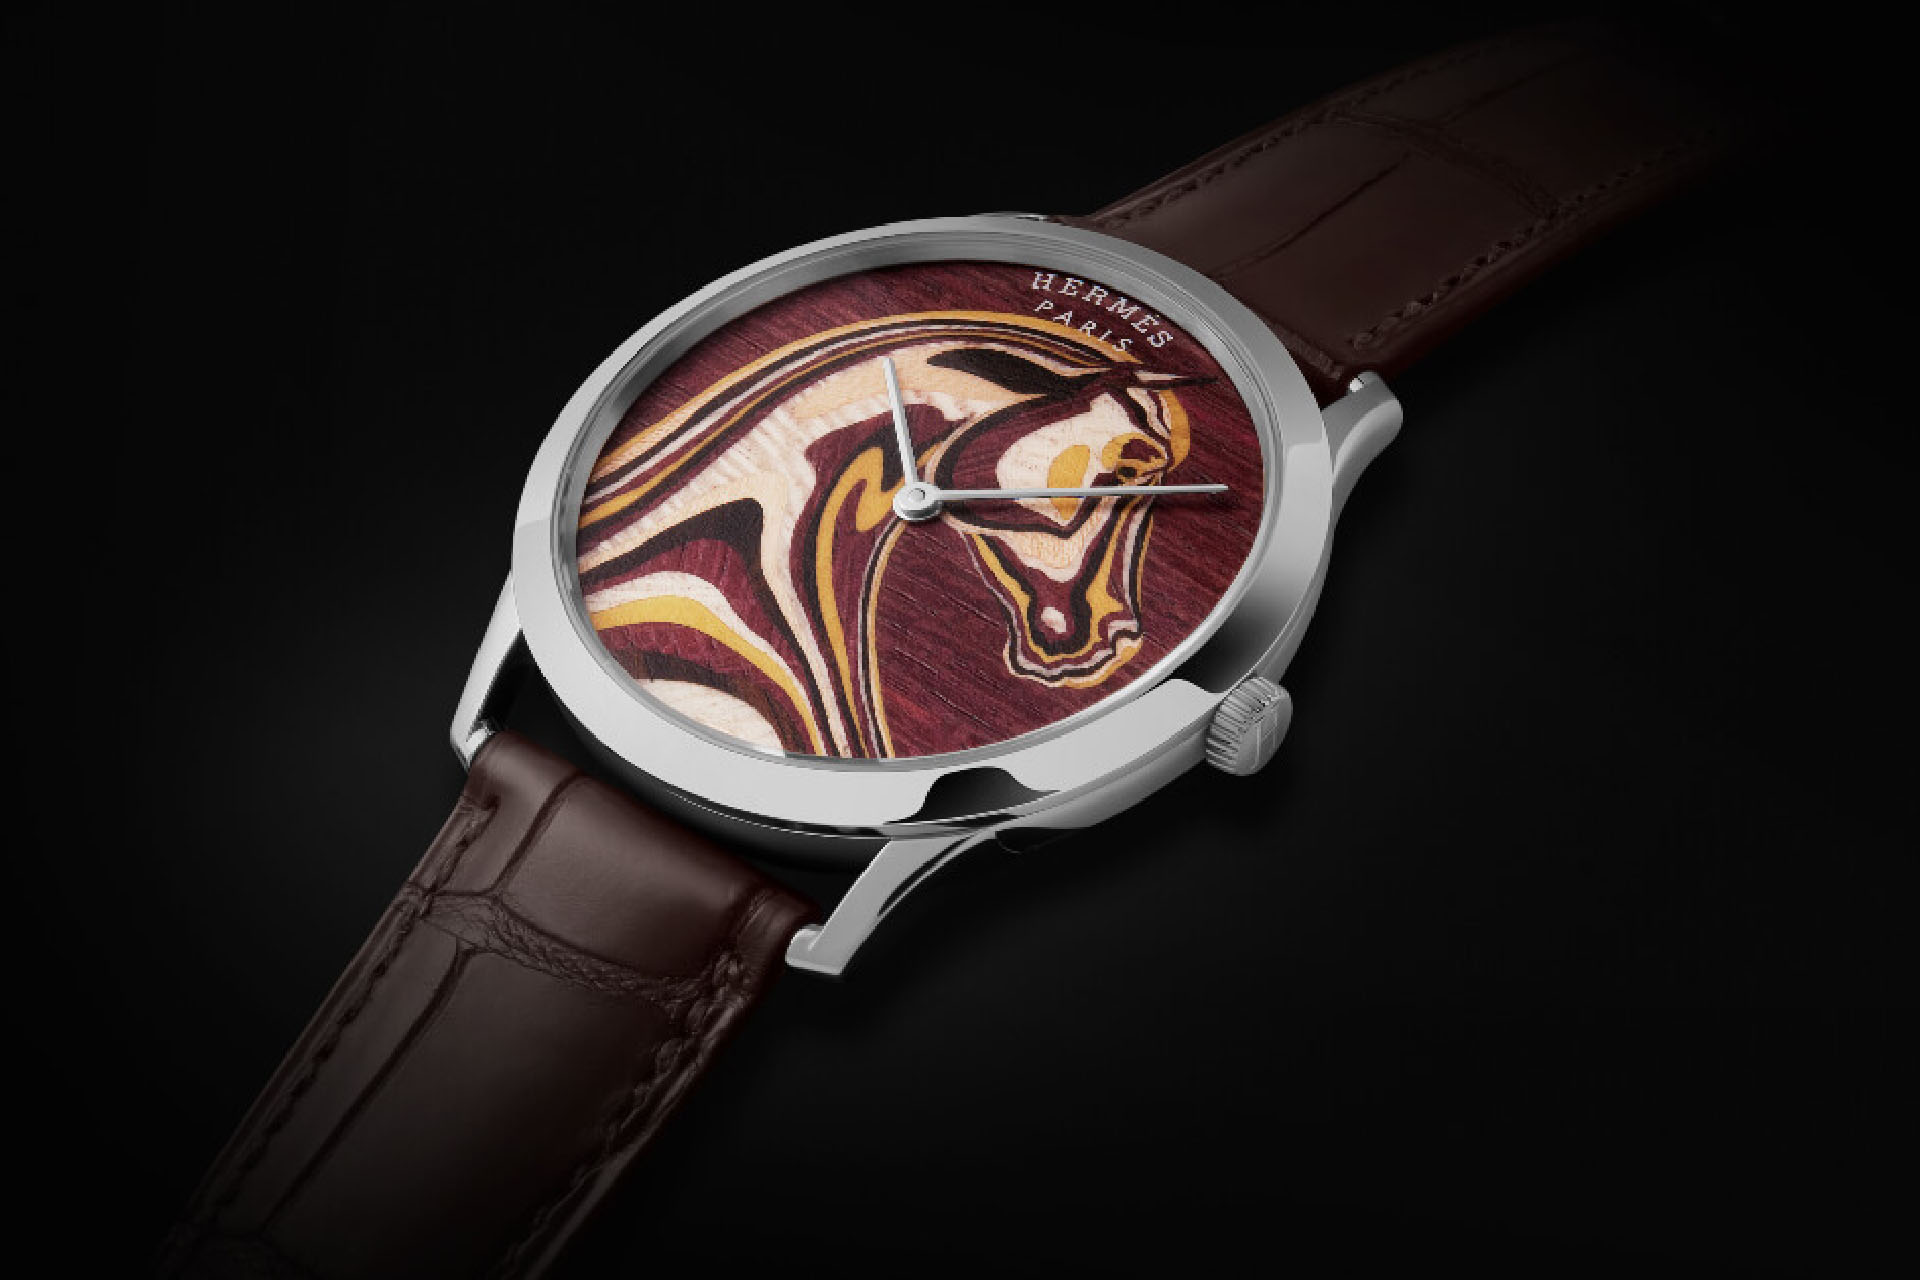 Equine Inspired Watches